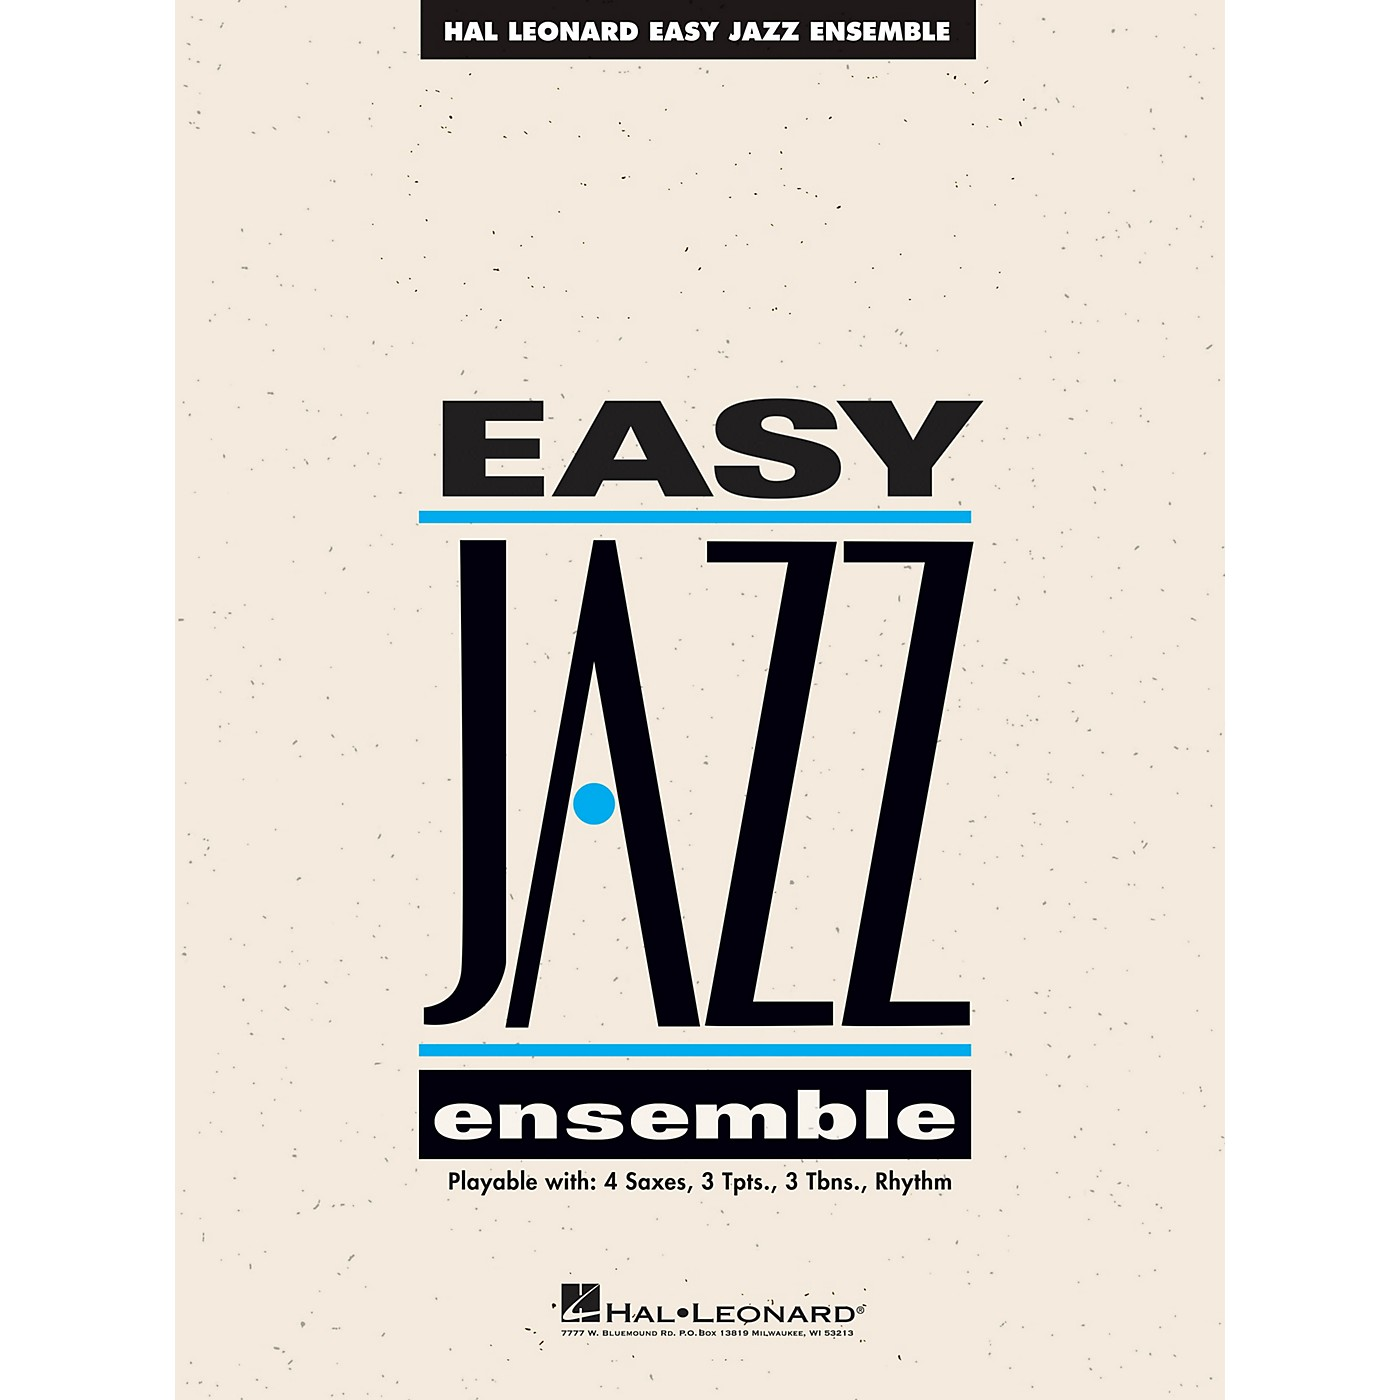 Hal Leonard The Best of Easy Jazz - Baritone Sax (15 Selections from the Easy Jazz Ensemble Series) Jazz Band Level 2 thumbnail